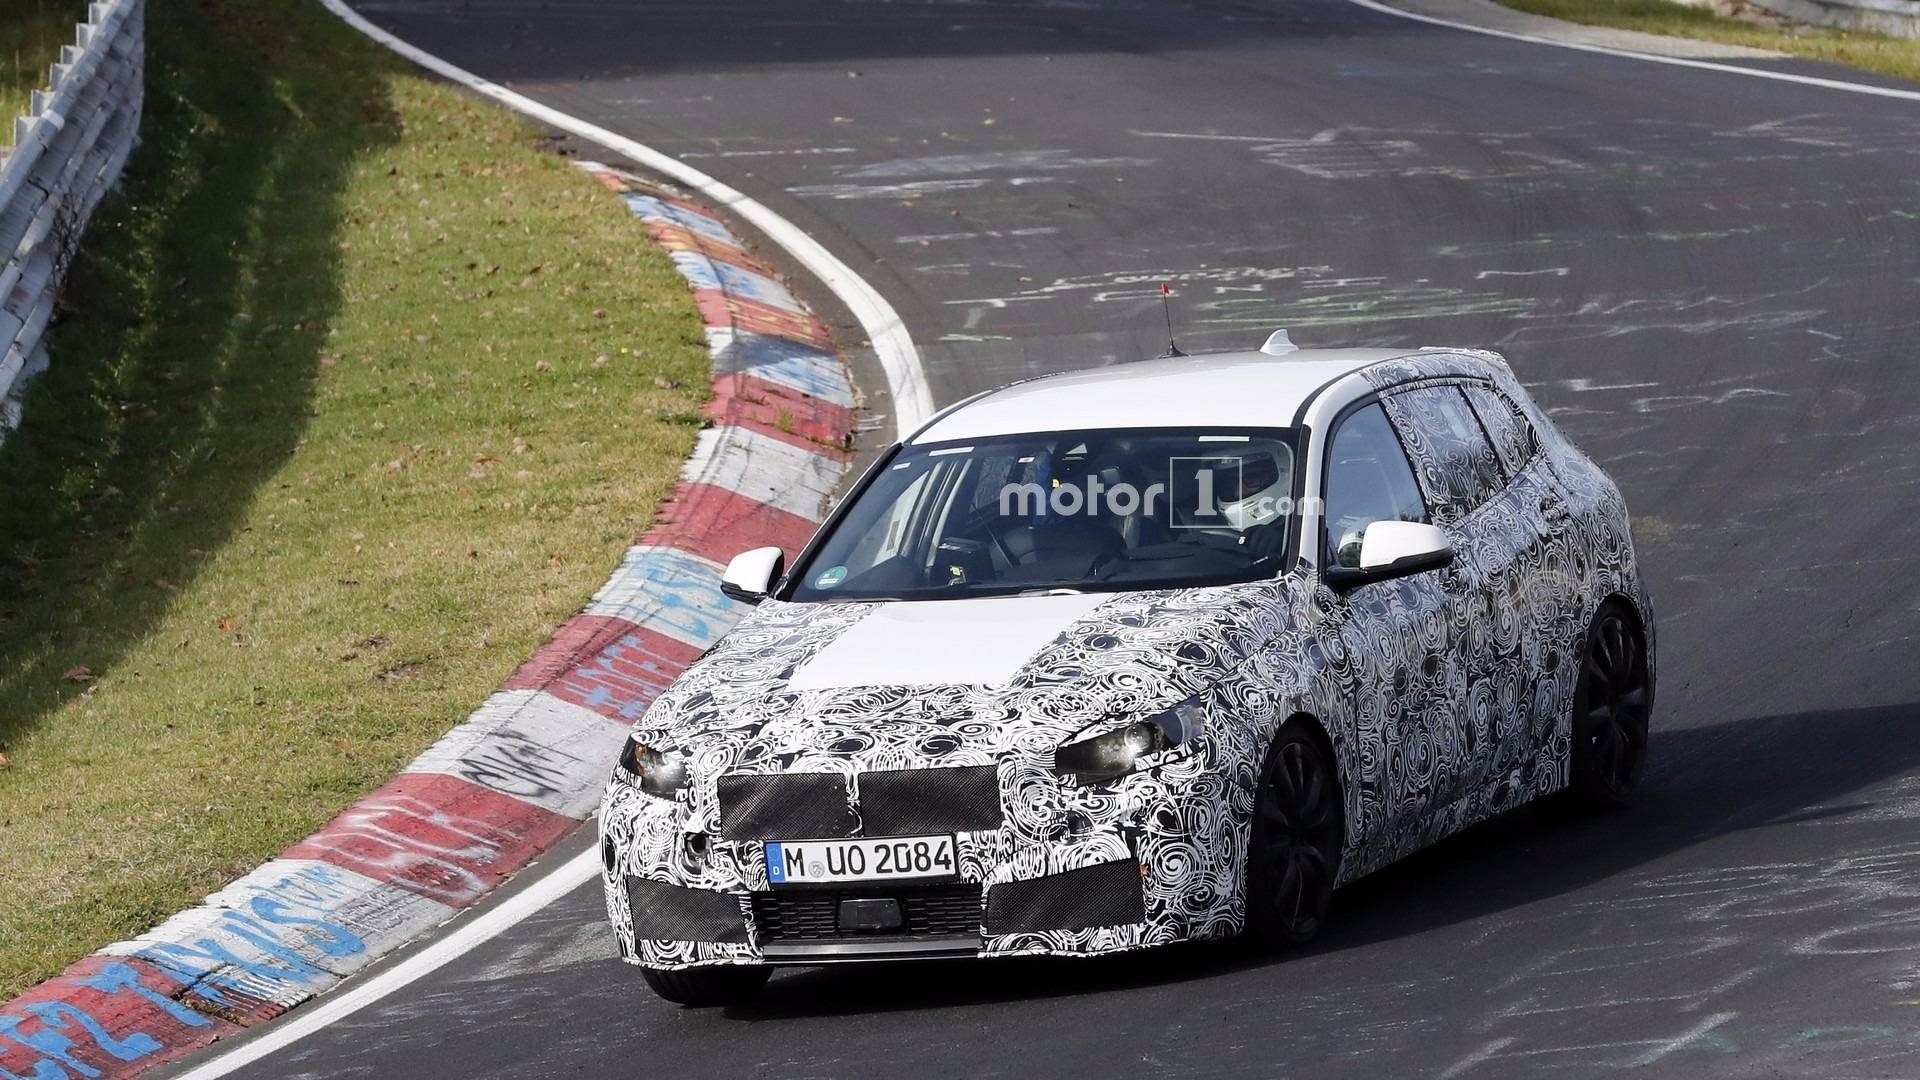 2019 BMW 1 Series Photographed Showing Digital Instrument